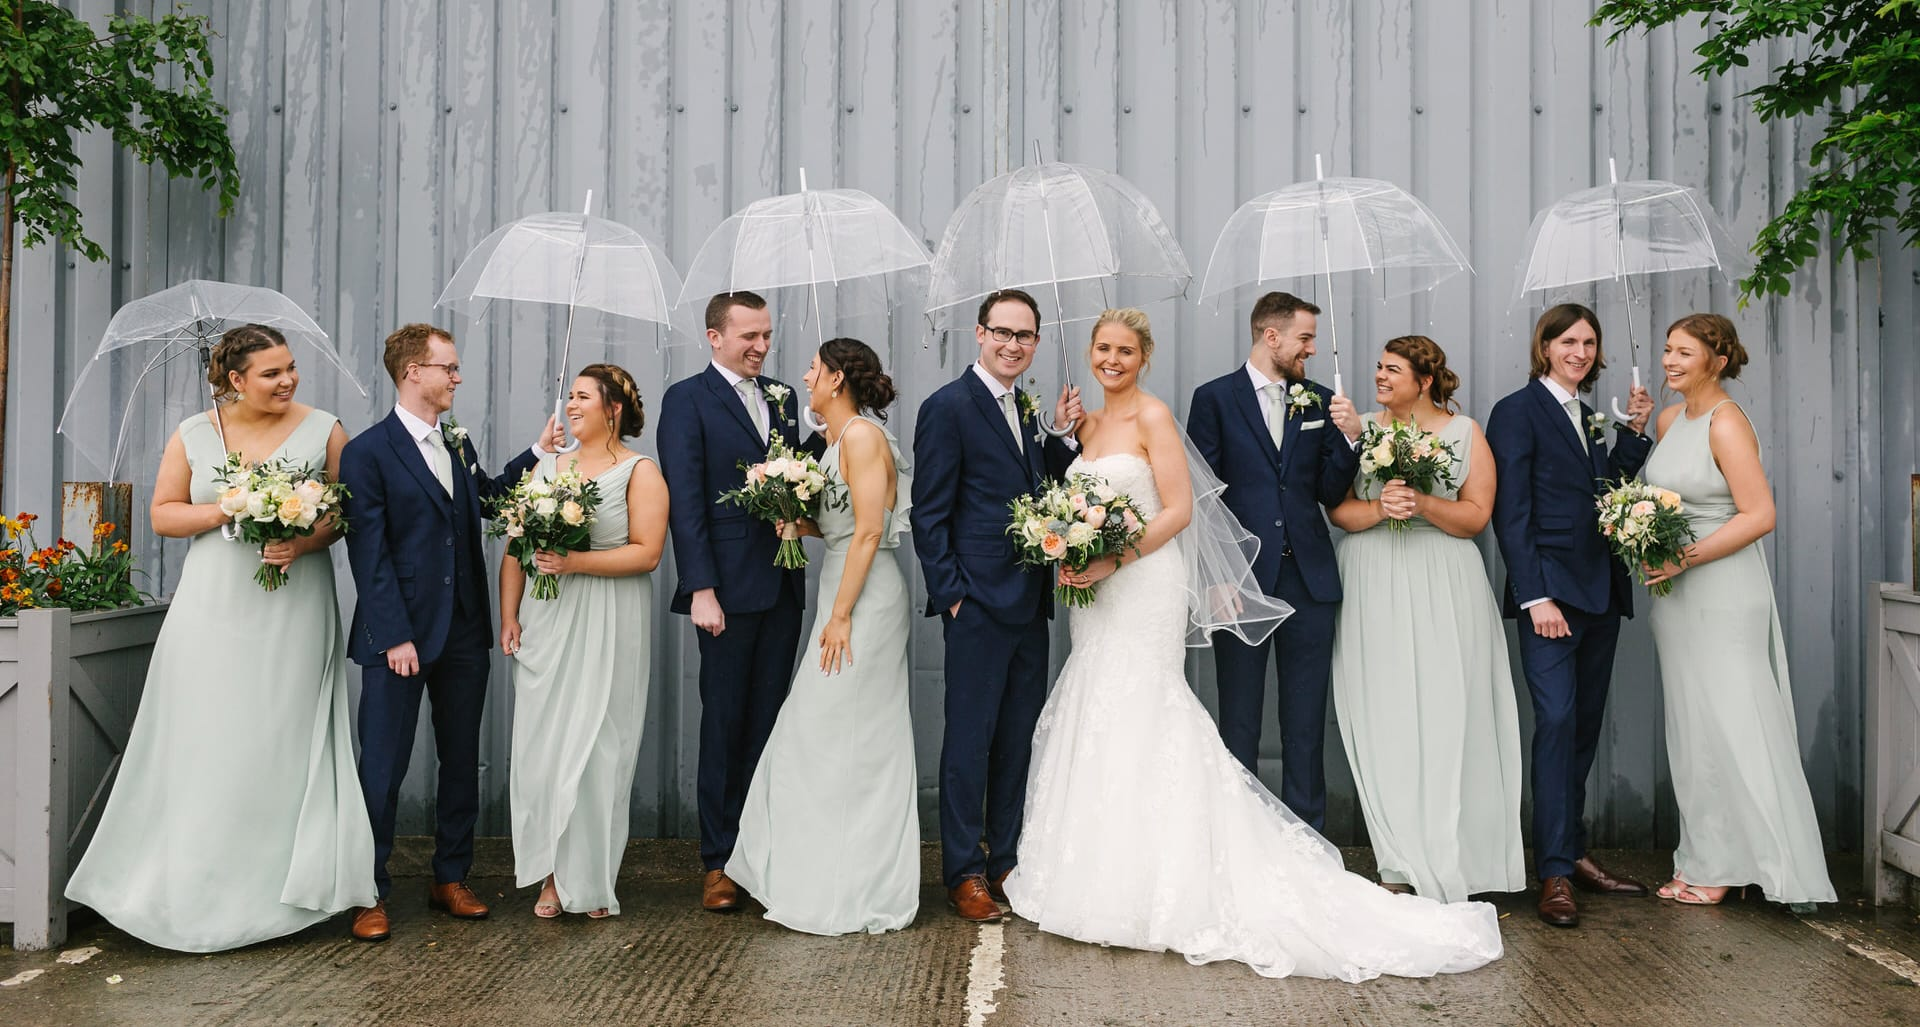 Bridal Party in the rain with umbrellas